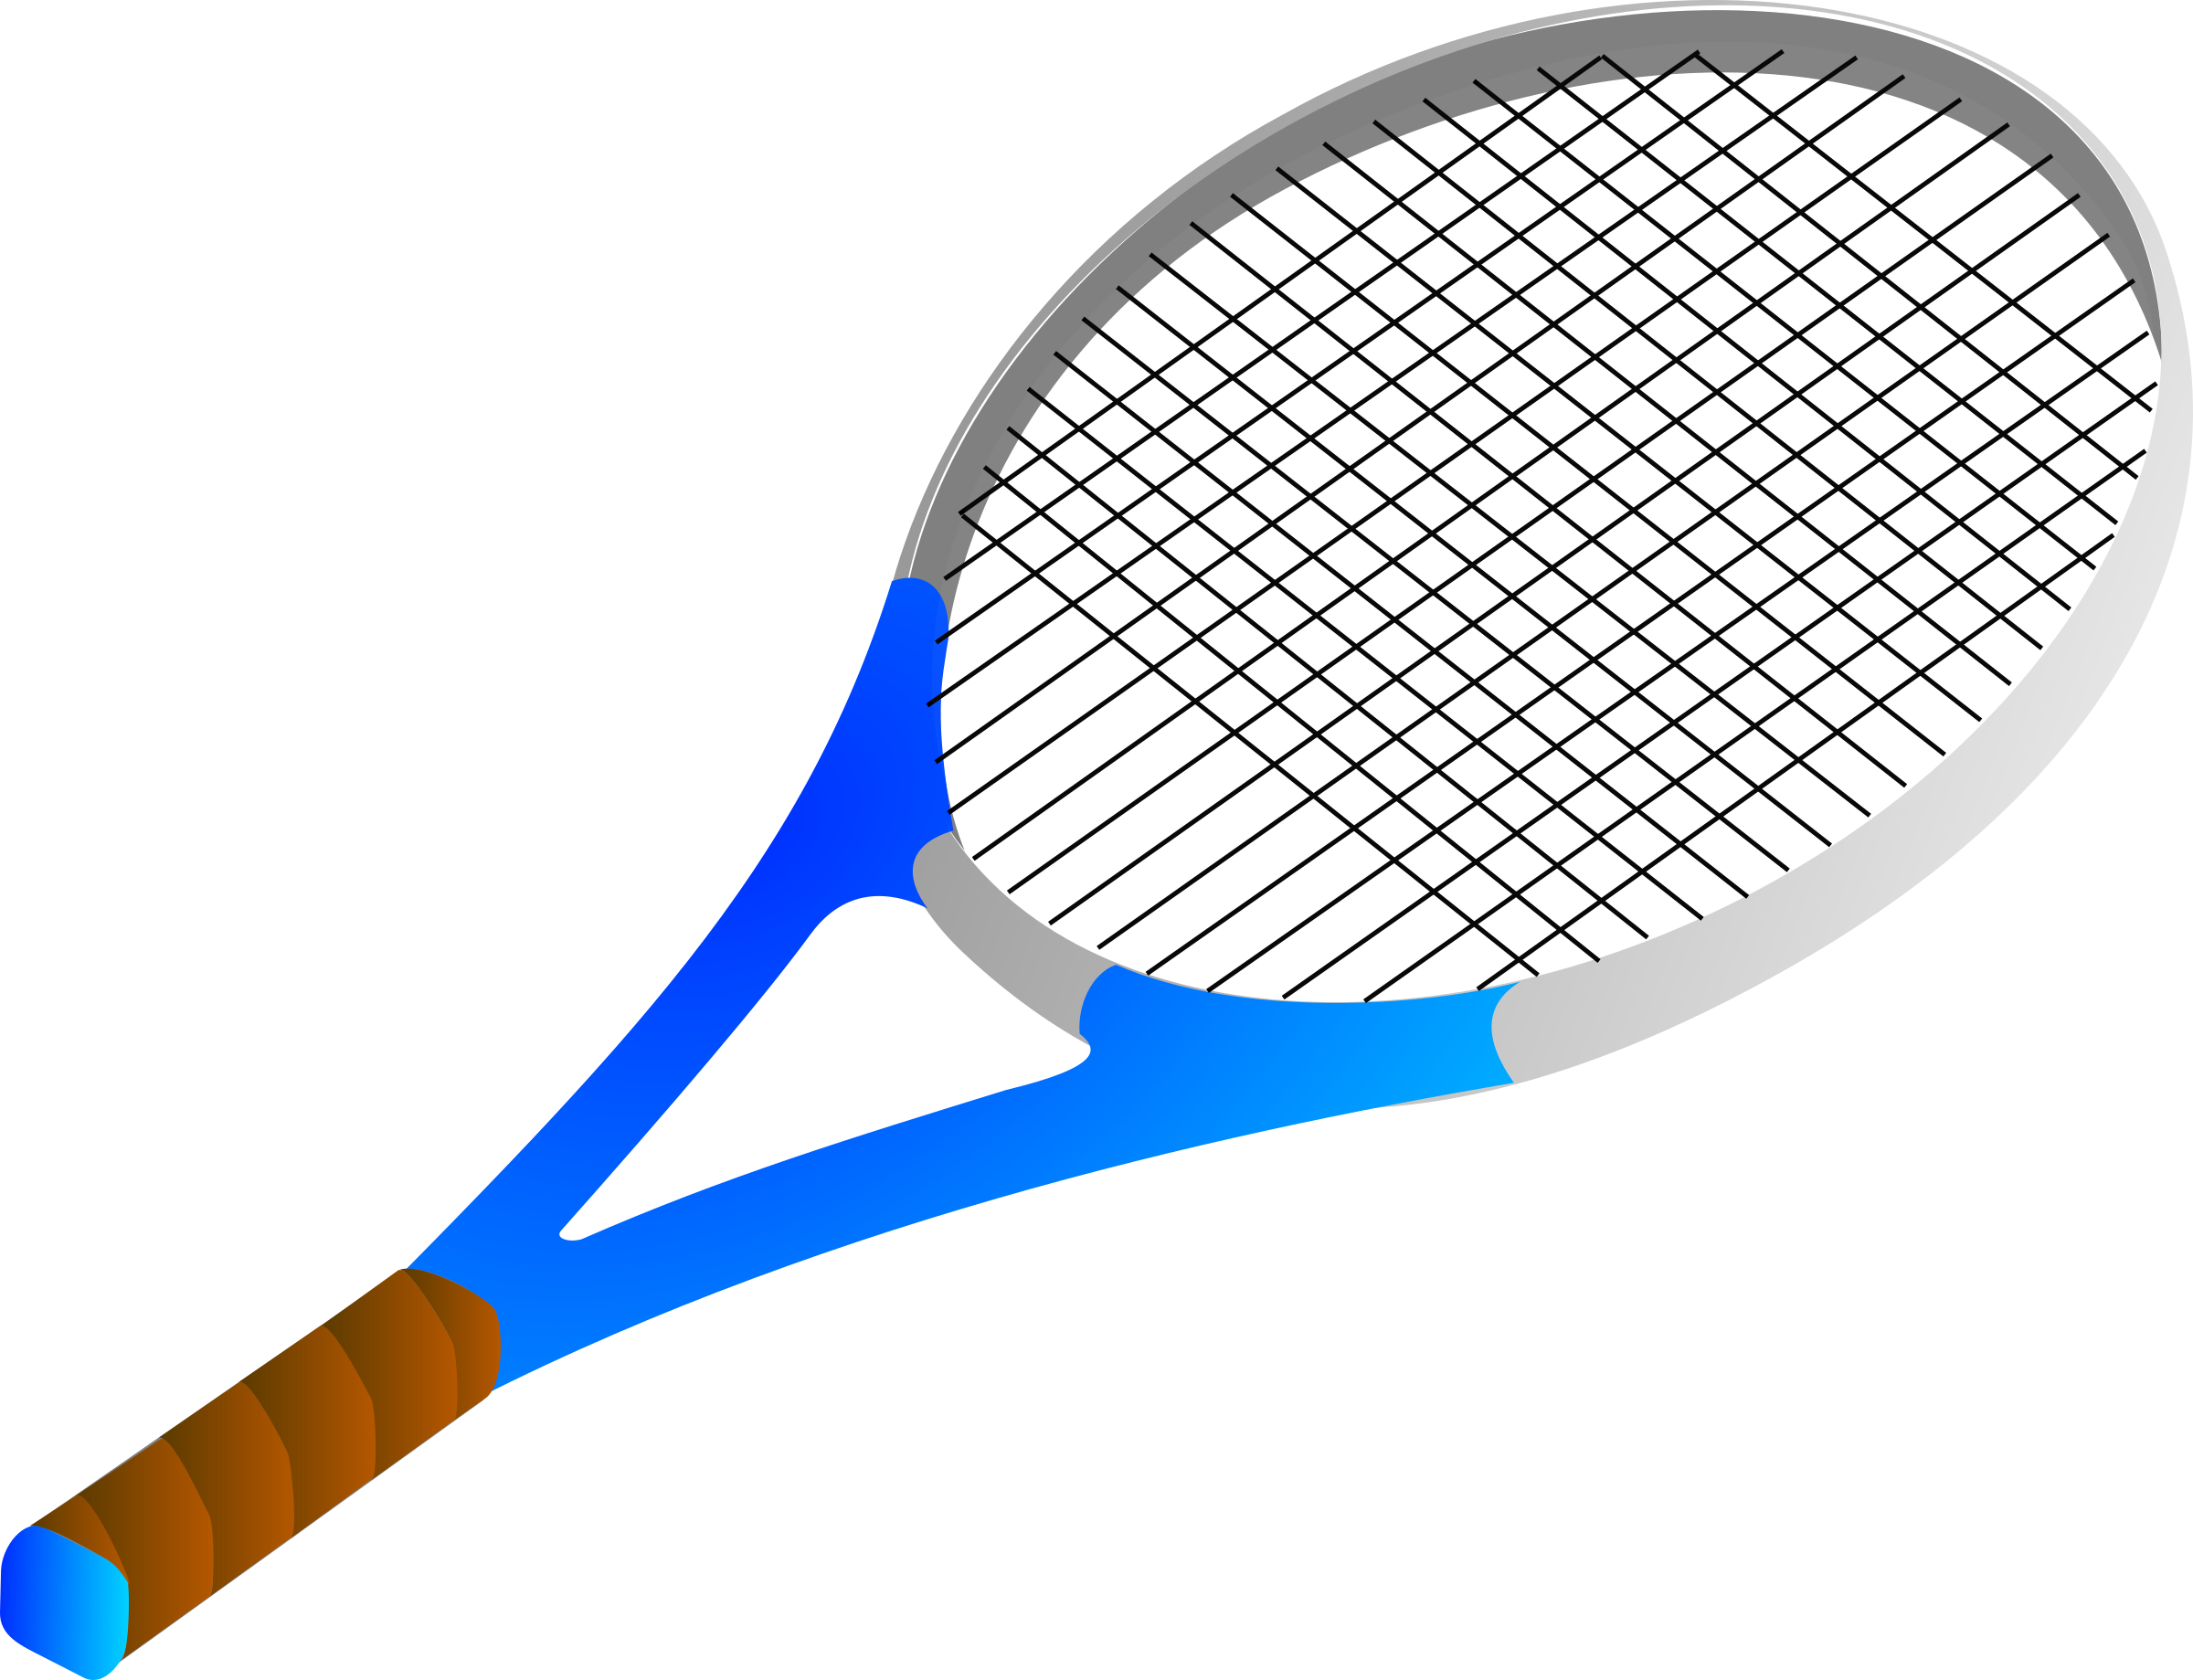 Clipart tennis racket with money jpg royalty free Tennis Racket PNG Image - PurePNG | Free transparent CC0 PNG Image ... jpg royalty free